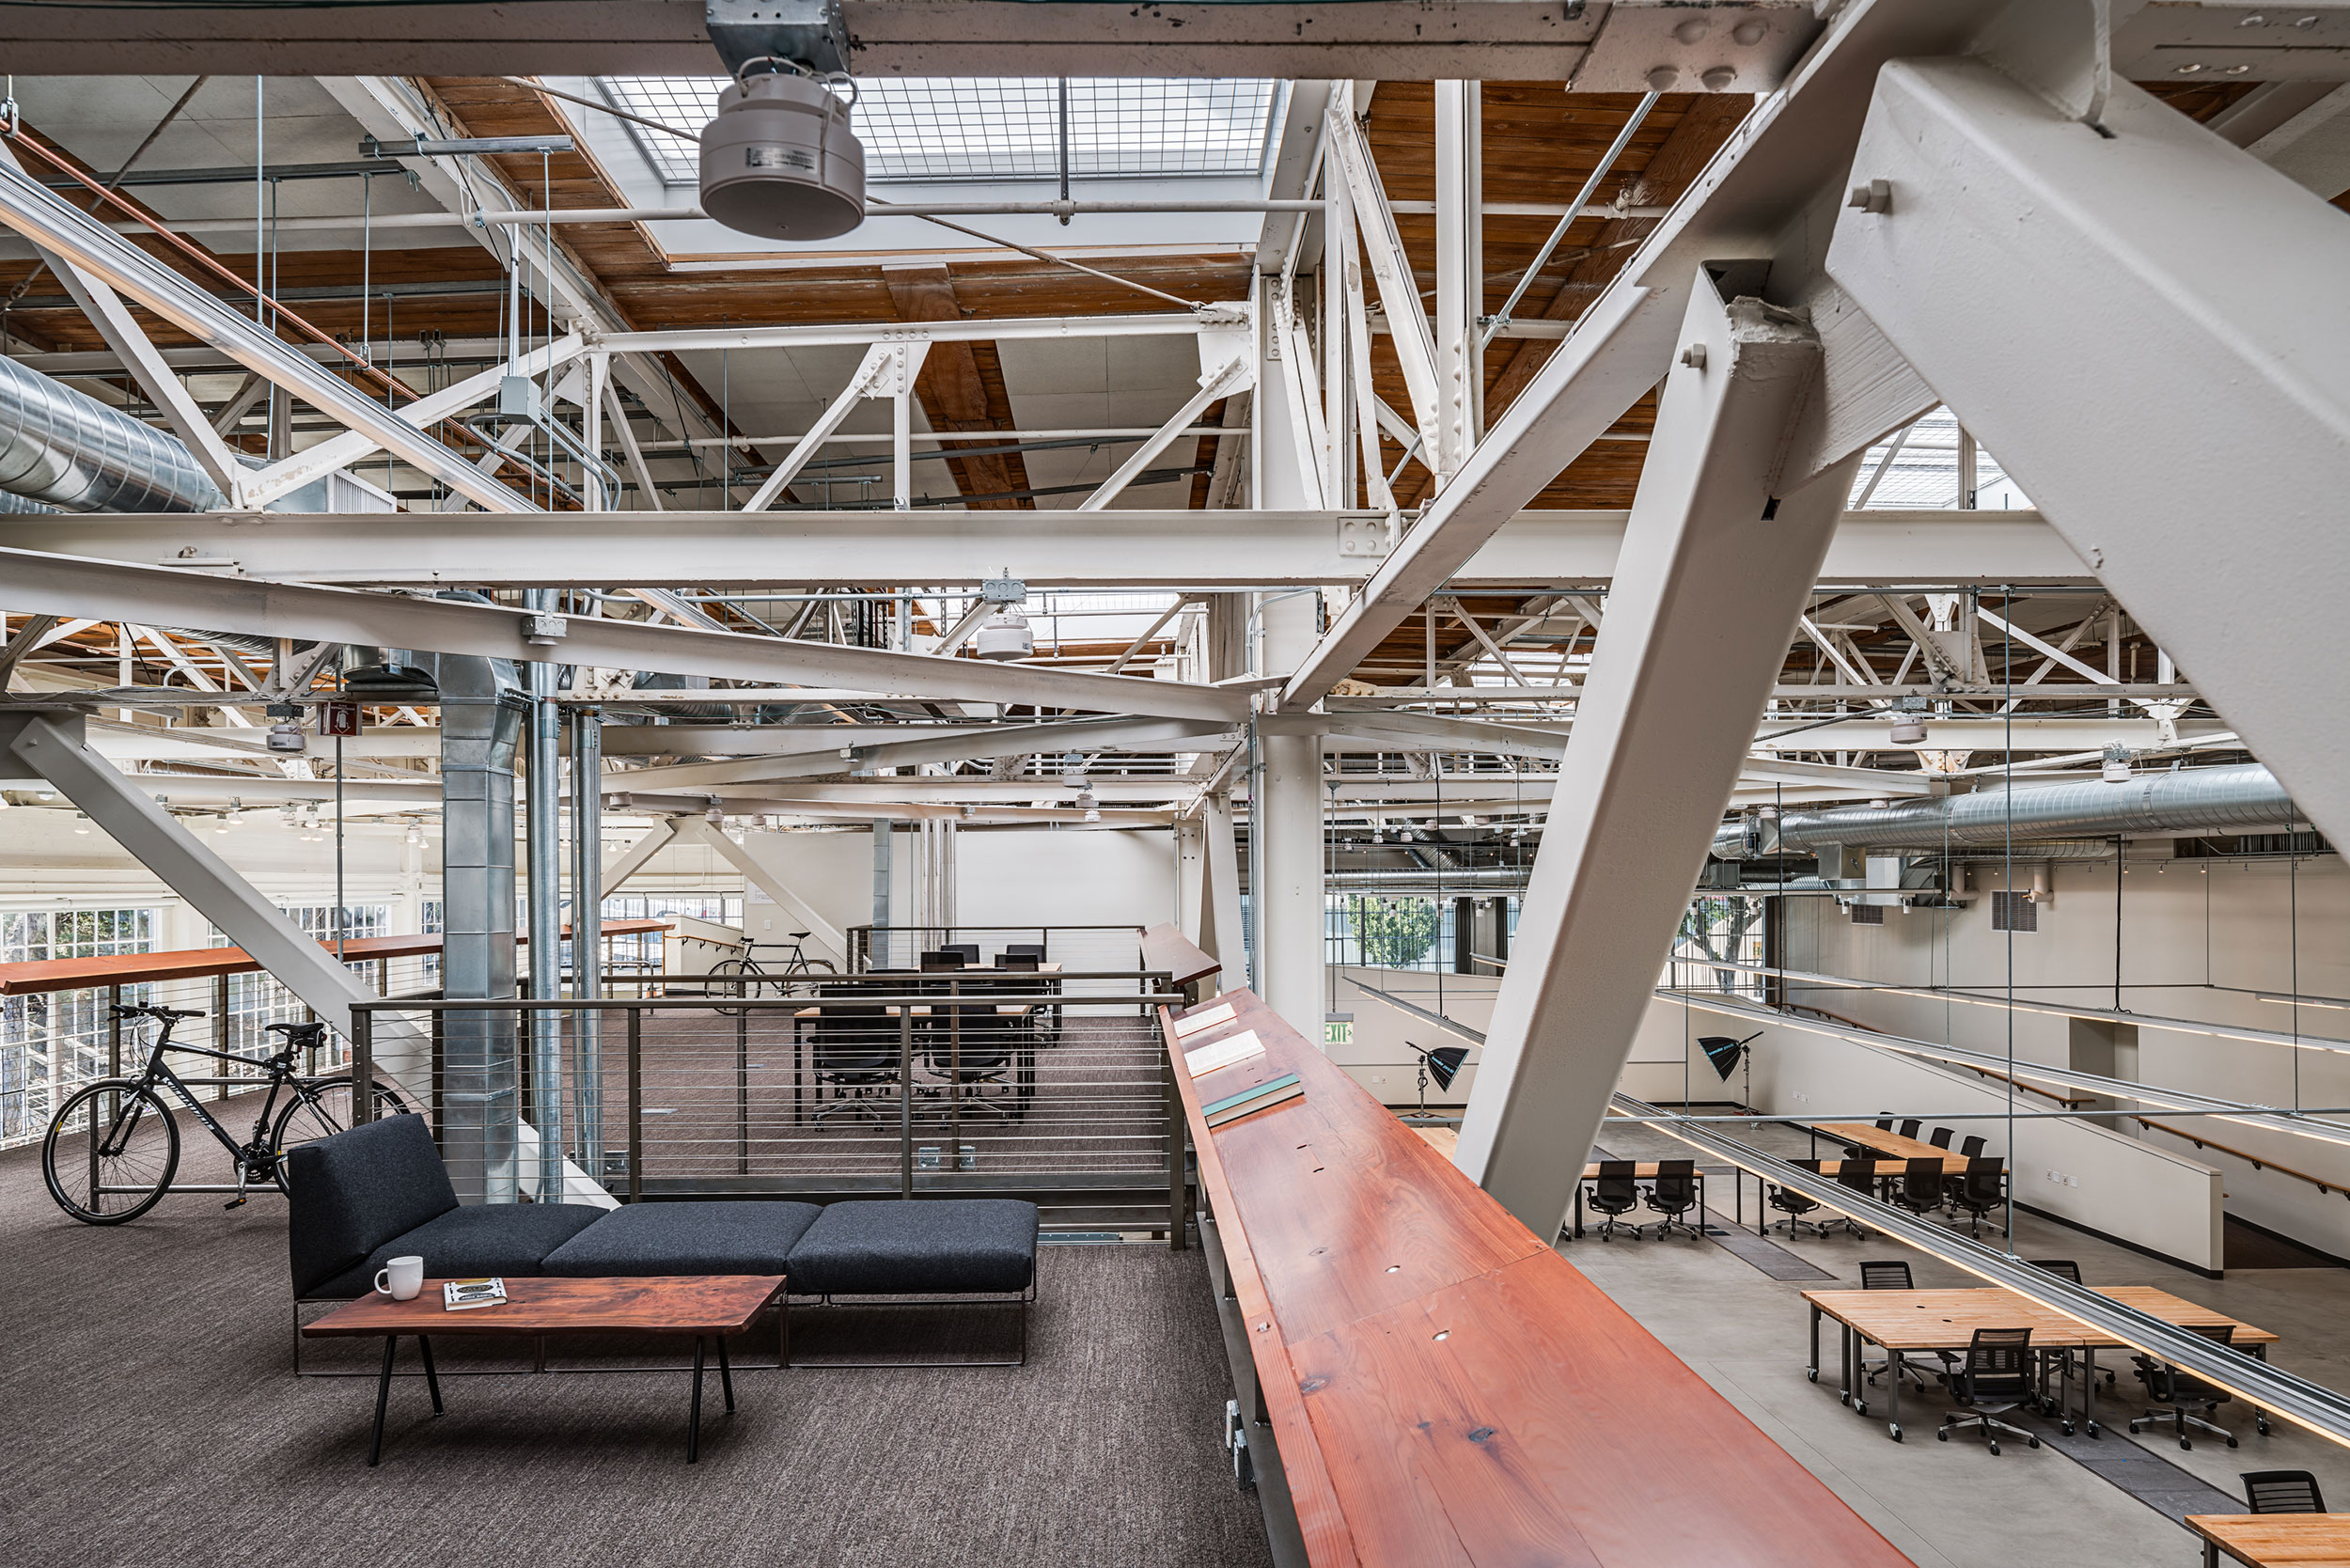 San Francisco Workplace, Office, Adaptive Reuse, Tech Company, Flexible Workspace, Ceiling Systems Integration, Natural Light